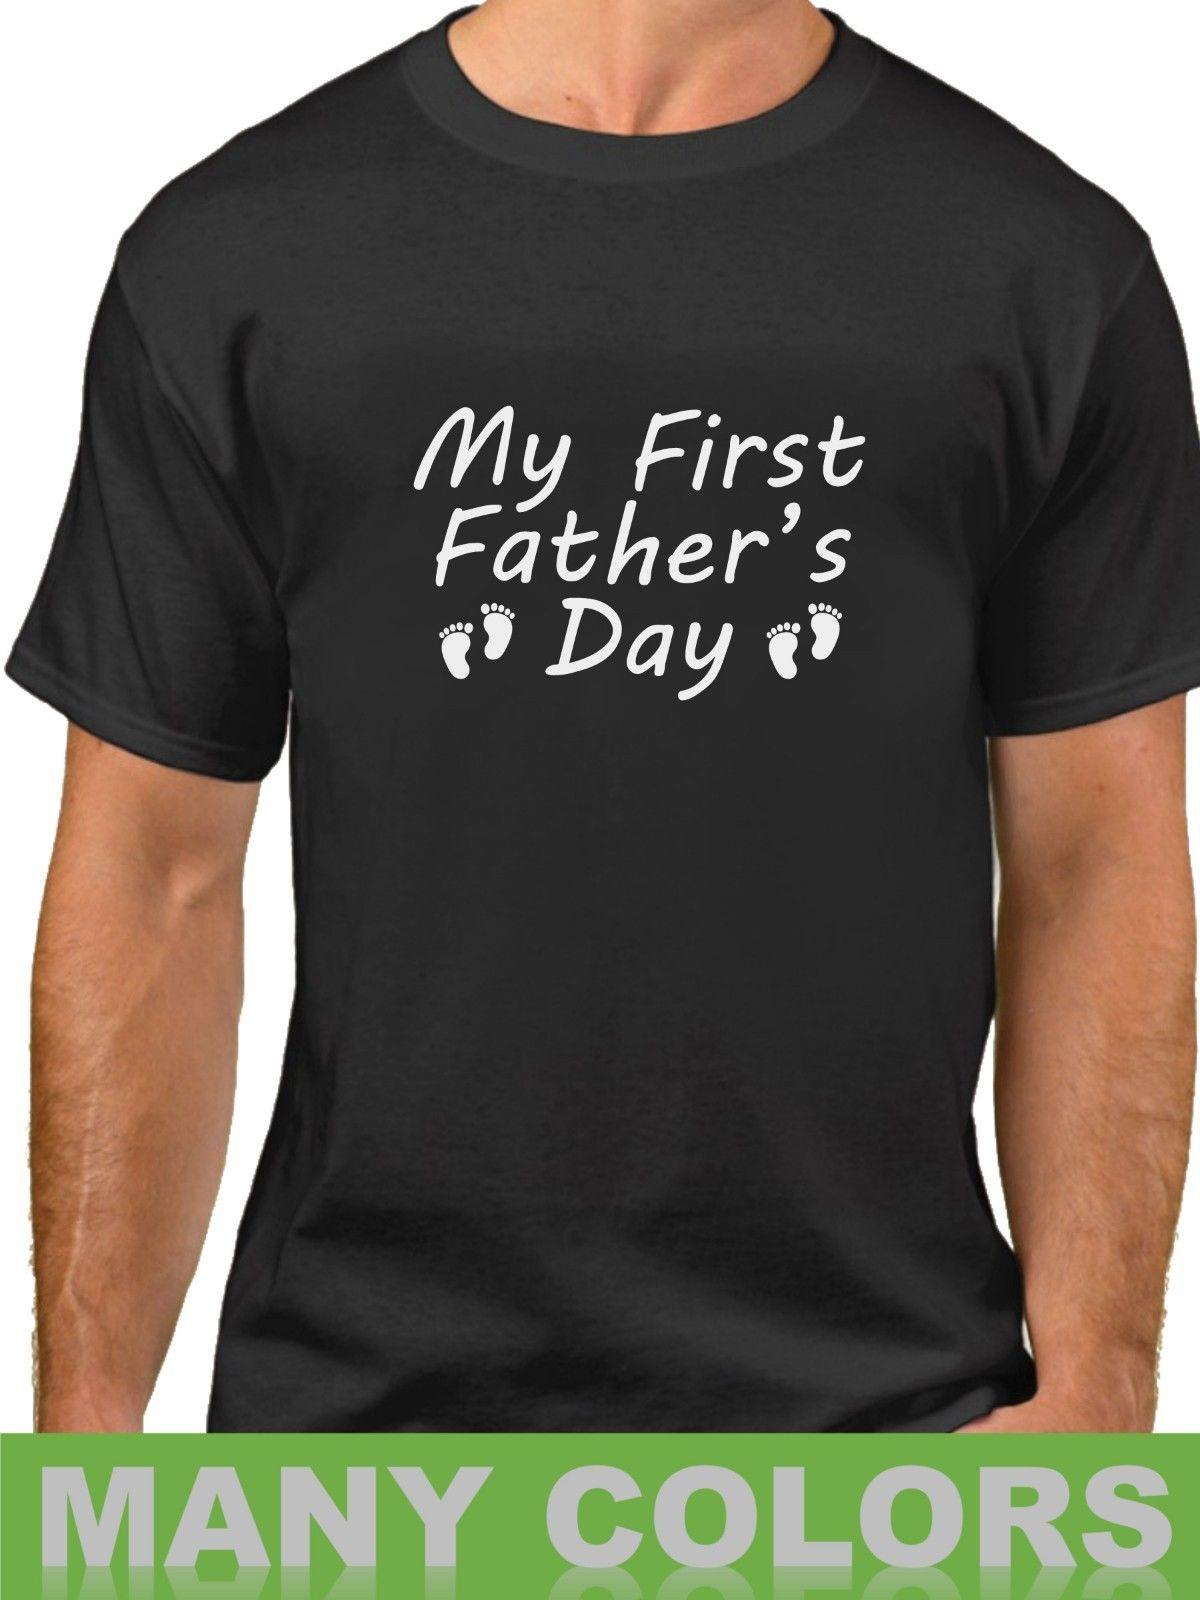 6209b086 Details zu My First Father's Day Shirt 1st Fathers Day Gift Daddy Pregnancy  Announcement Funny free shipping Unisex tee